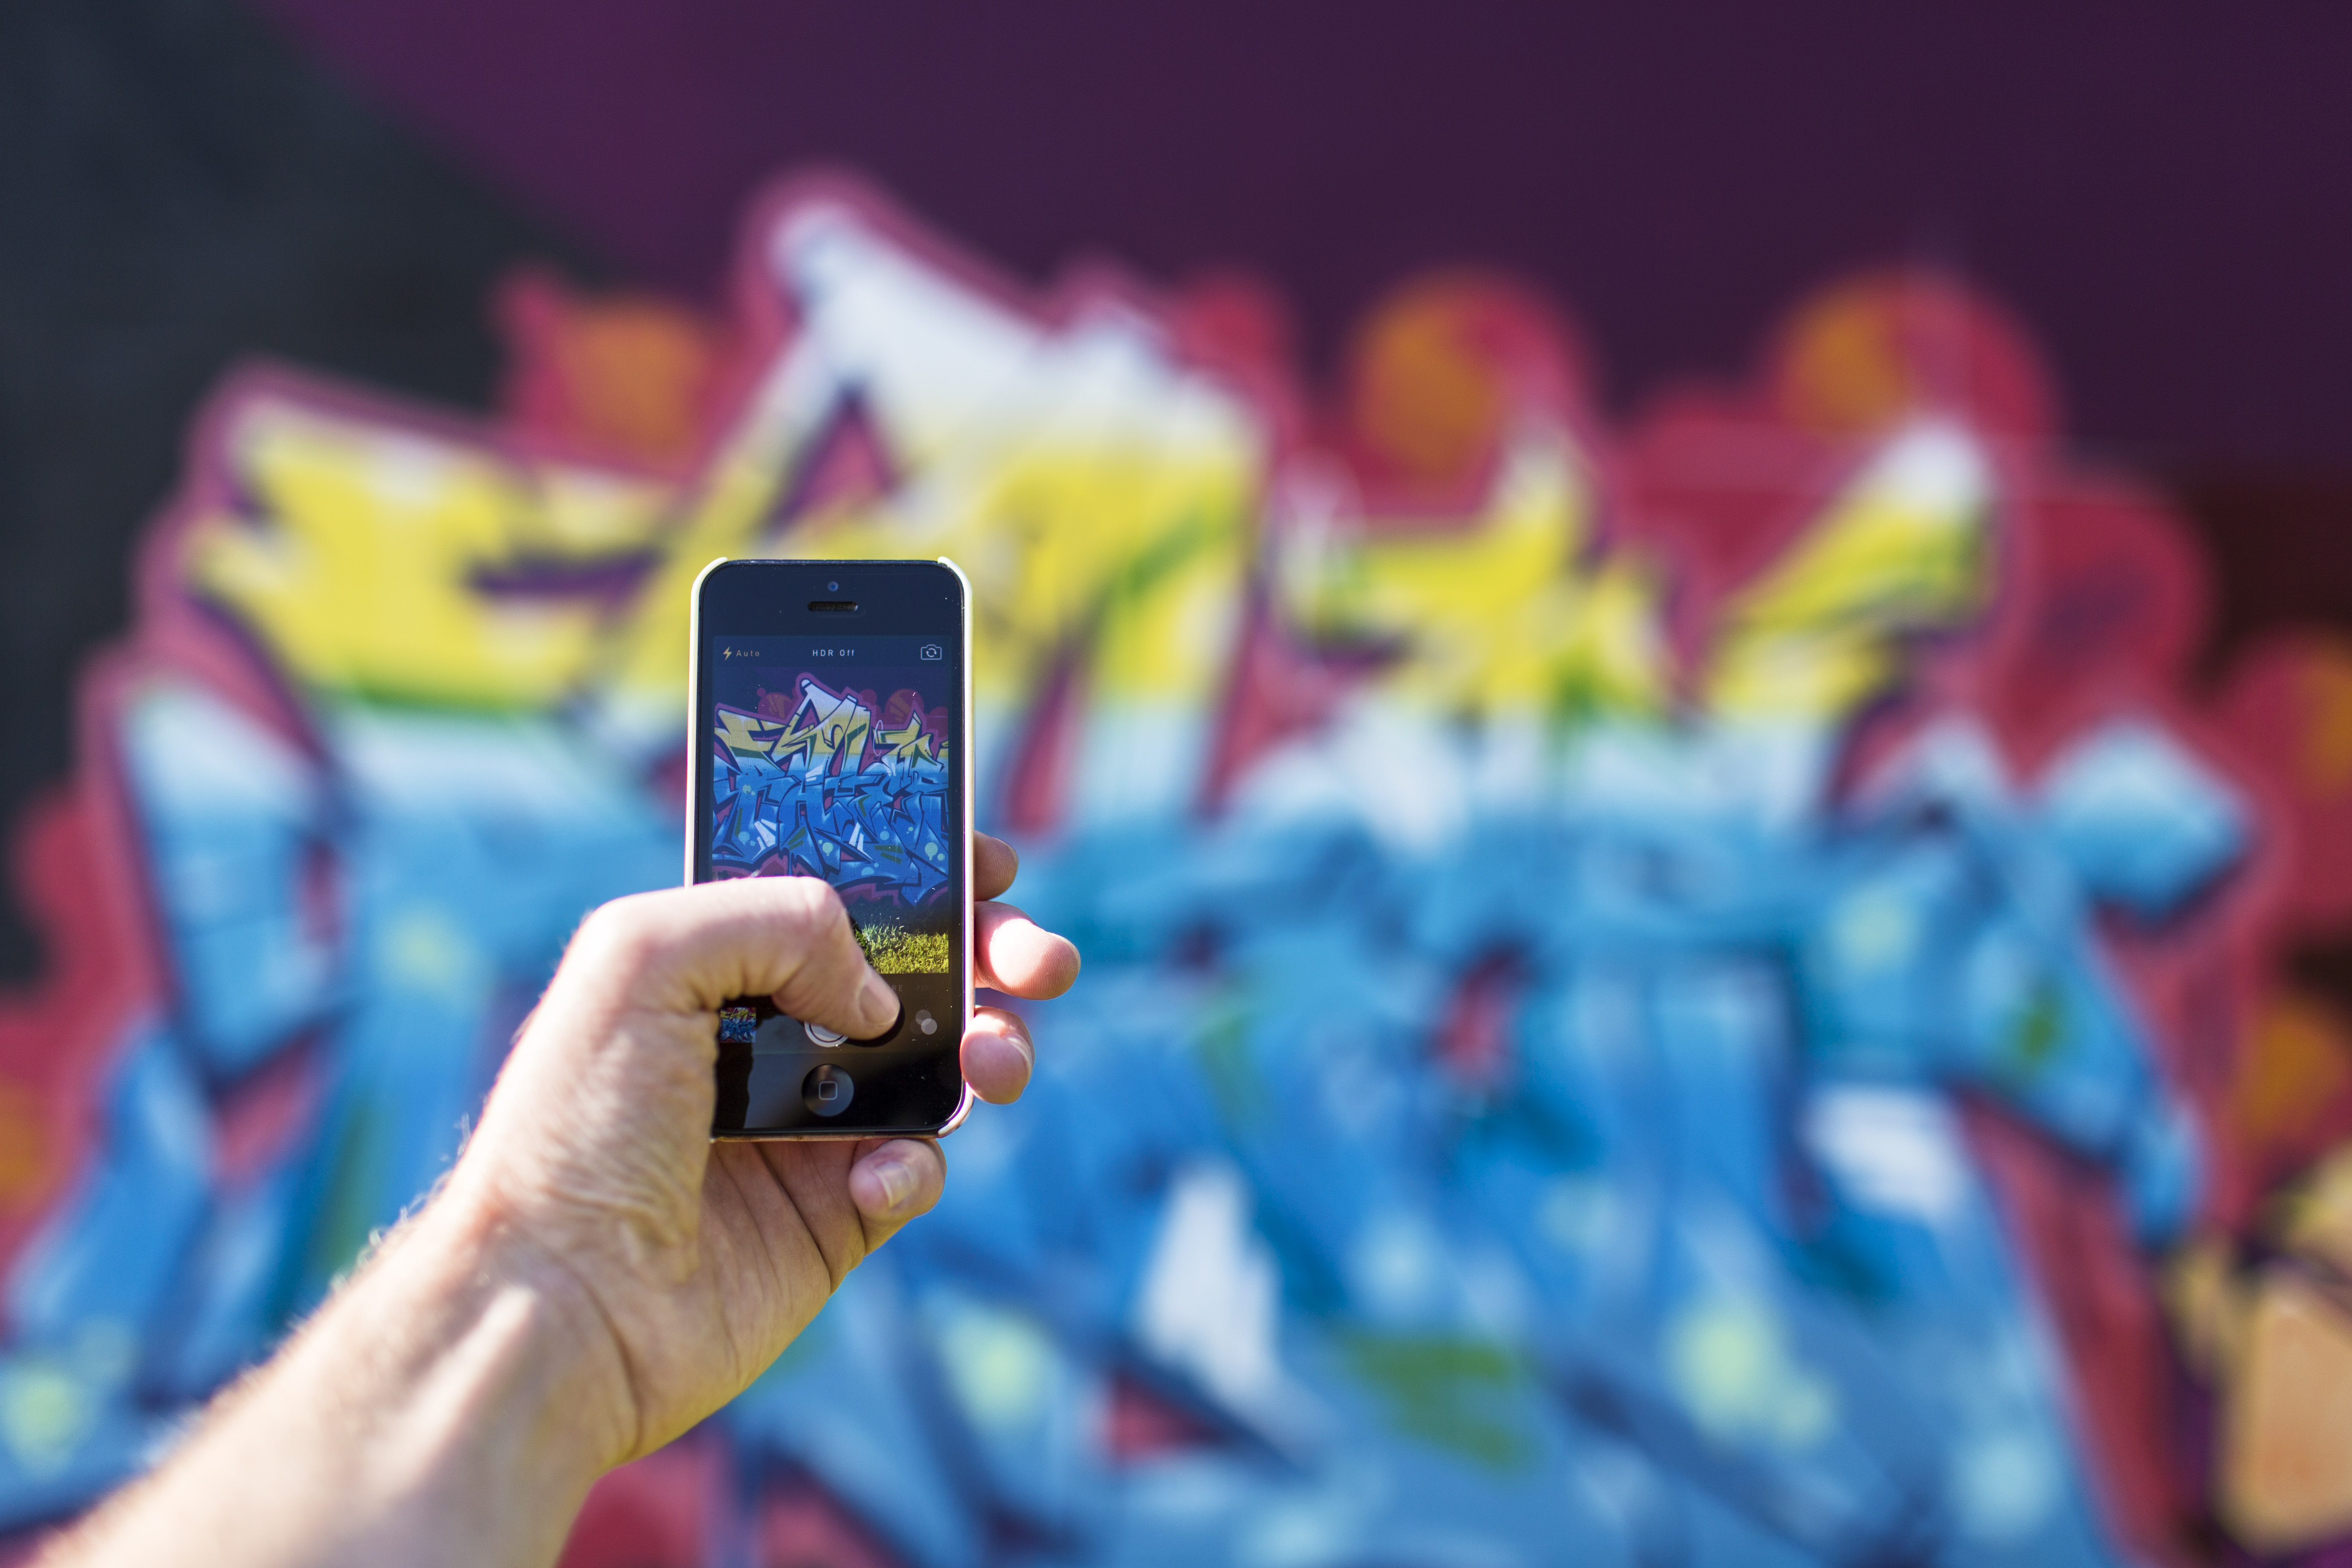 iphone-smartphone-taking-photo-graffiti